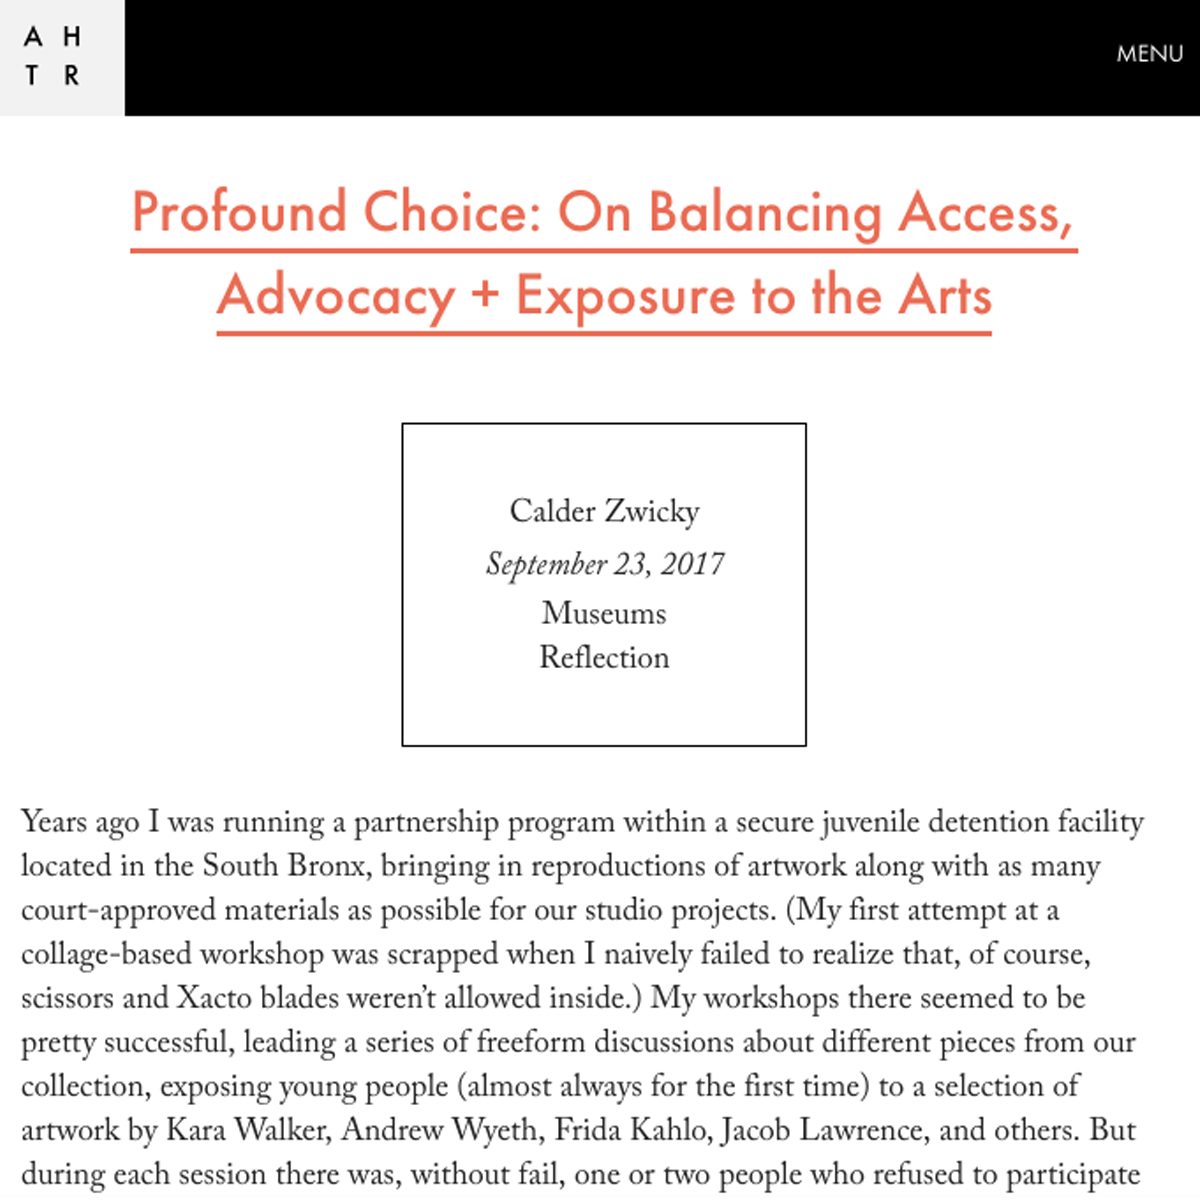 Profound Choice: On Balancing Access, Advocacy + Exposure to the Arts